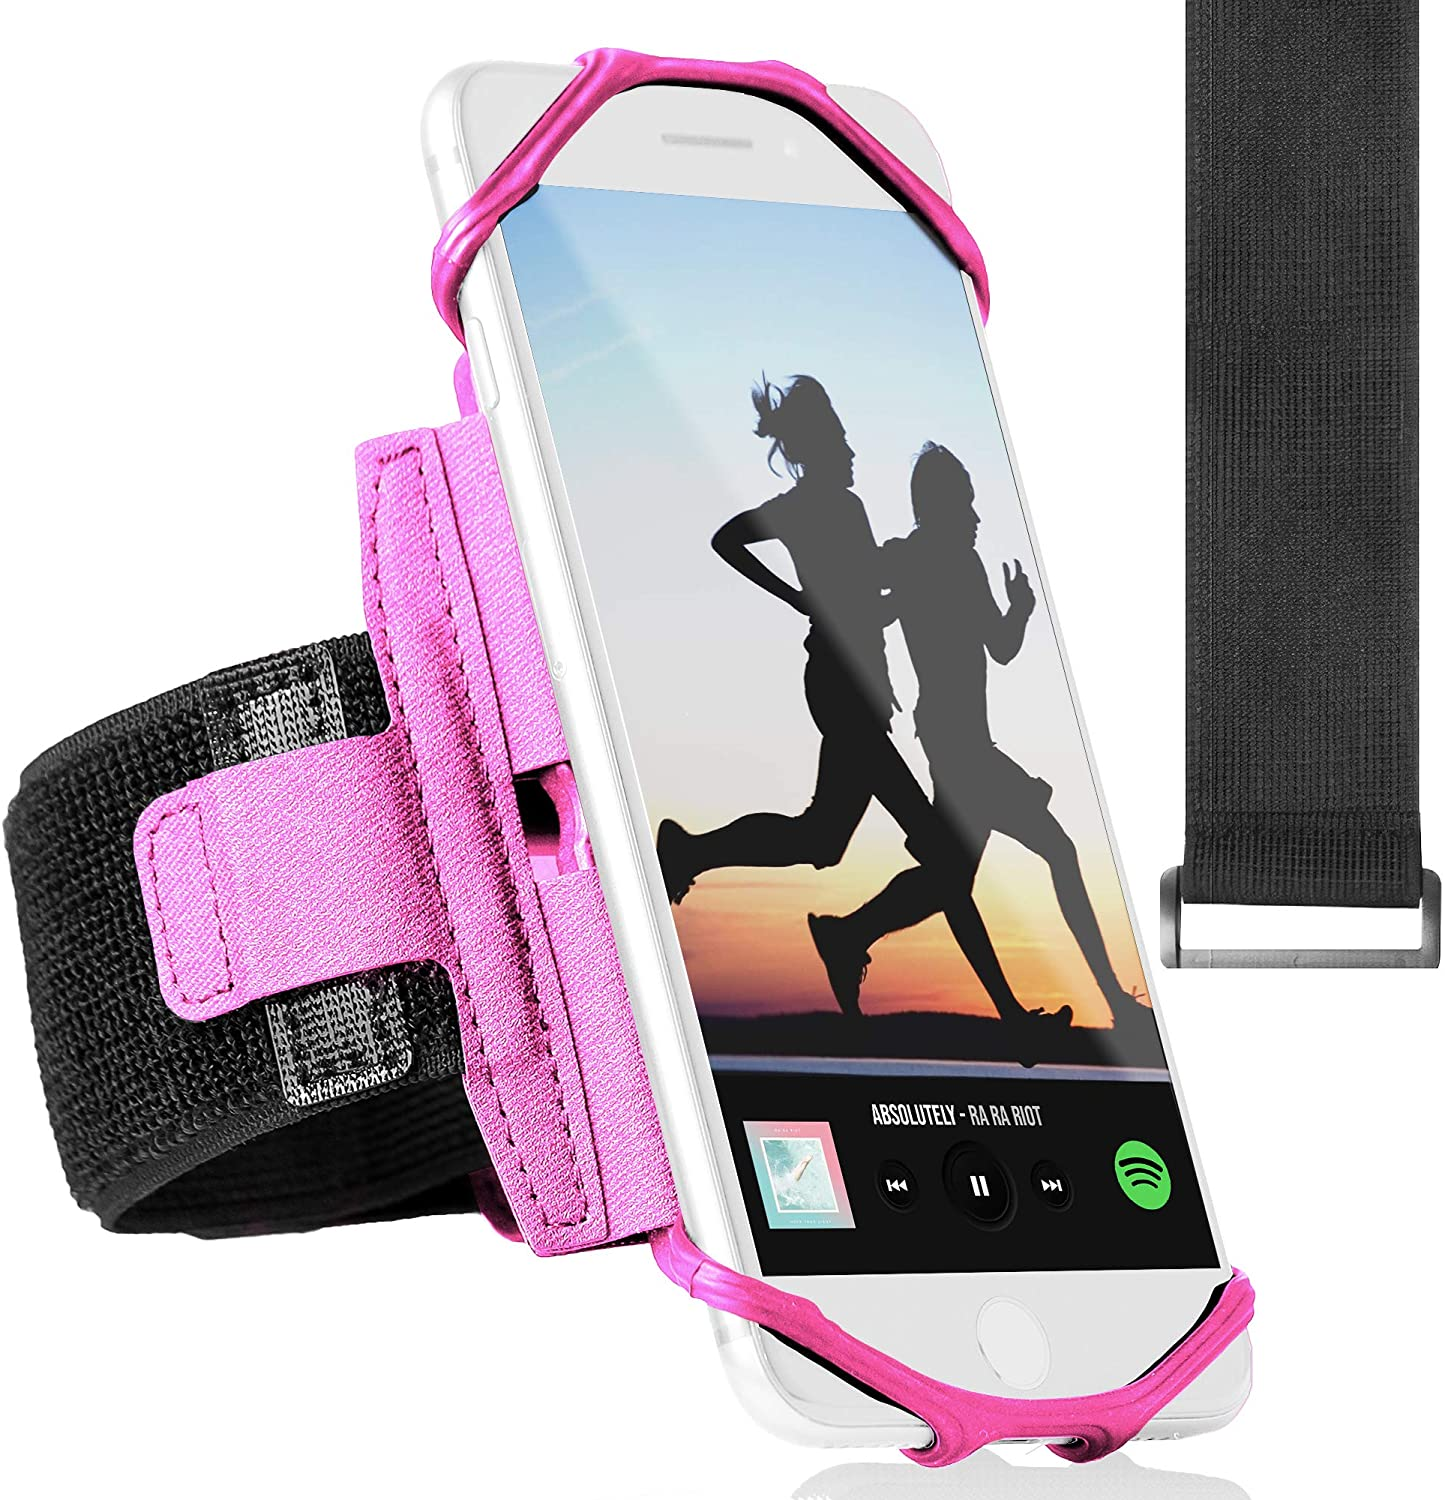 360° Rotatable Sports Running Armband for iPhone XR, XS Max, 8, 8 Plus, 7, 6, Samsung Galaxy A8, S9, S8, S6 Edge, Note, LG; Cell Phone Arm Holder for Men & Women with Free Extender Strap (Pink)